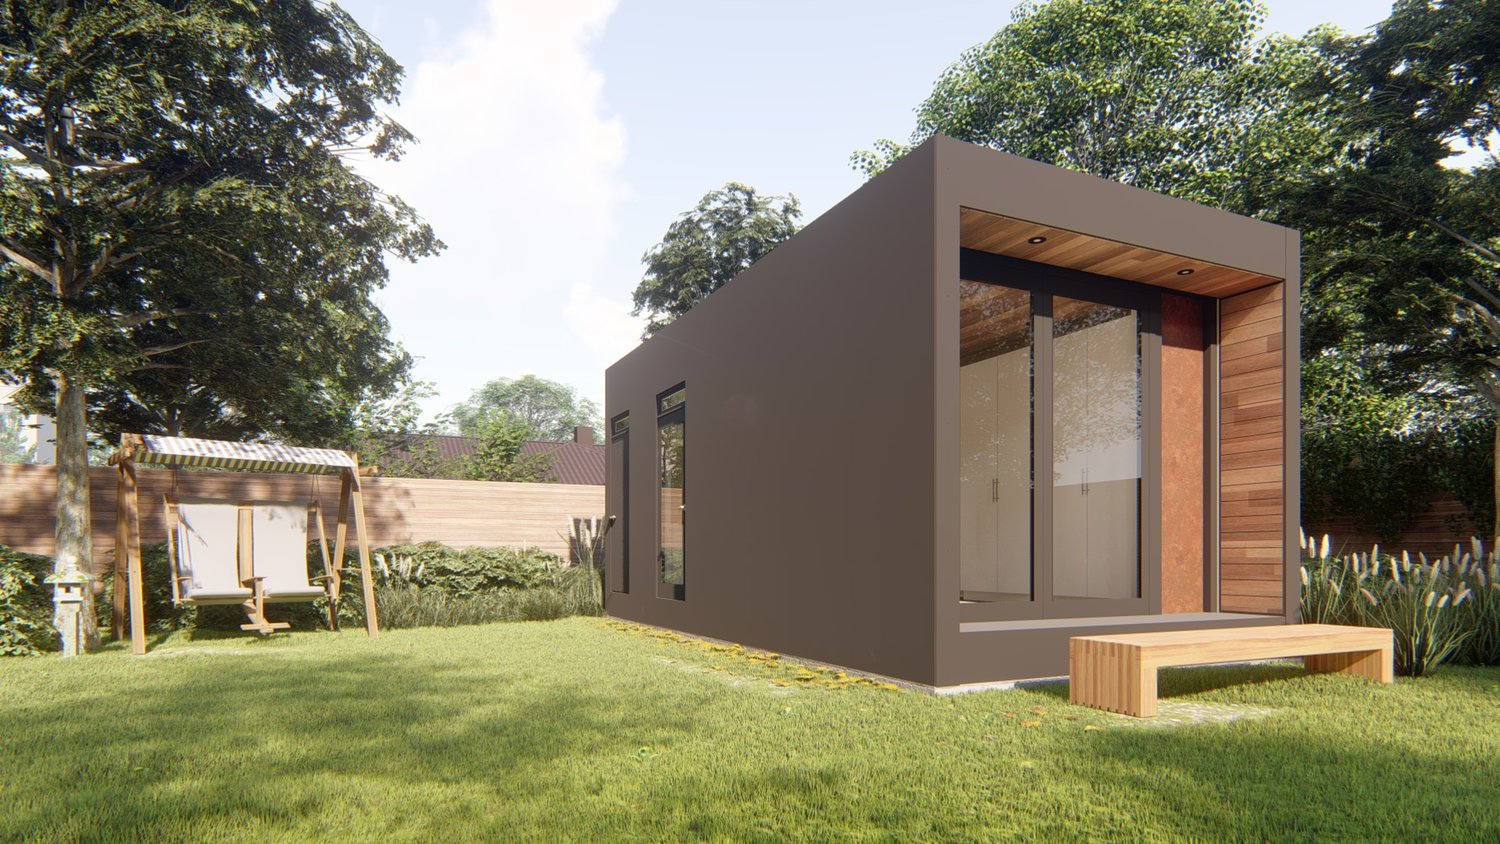 A brown-colored modular home with large windows, set it a backyard with grass and trees.